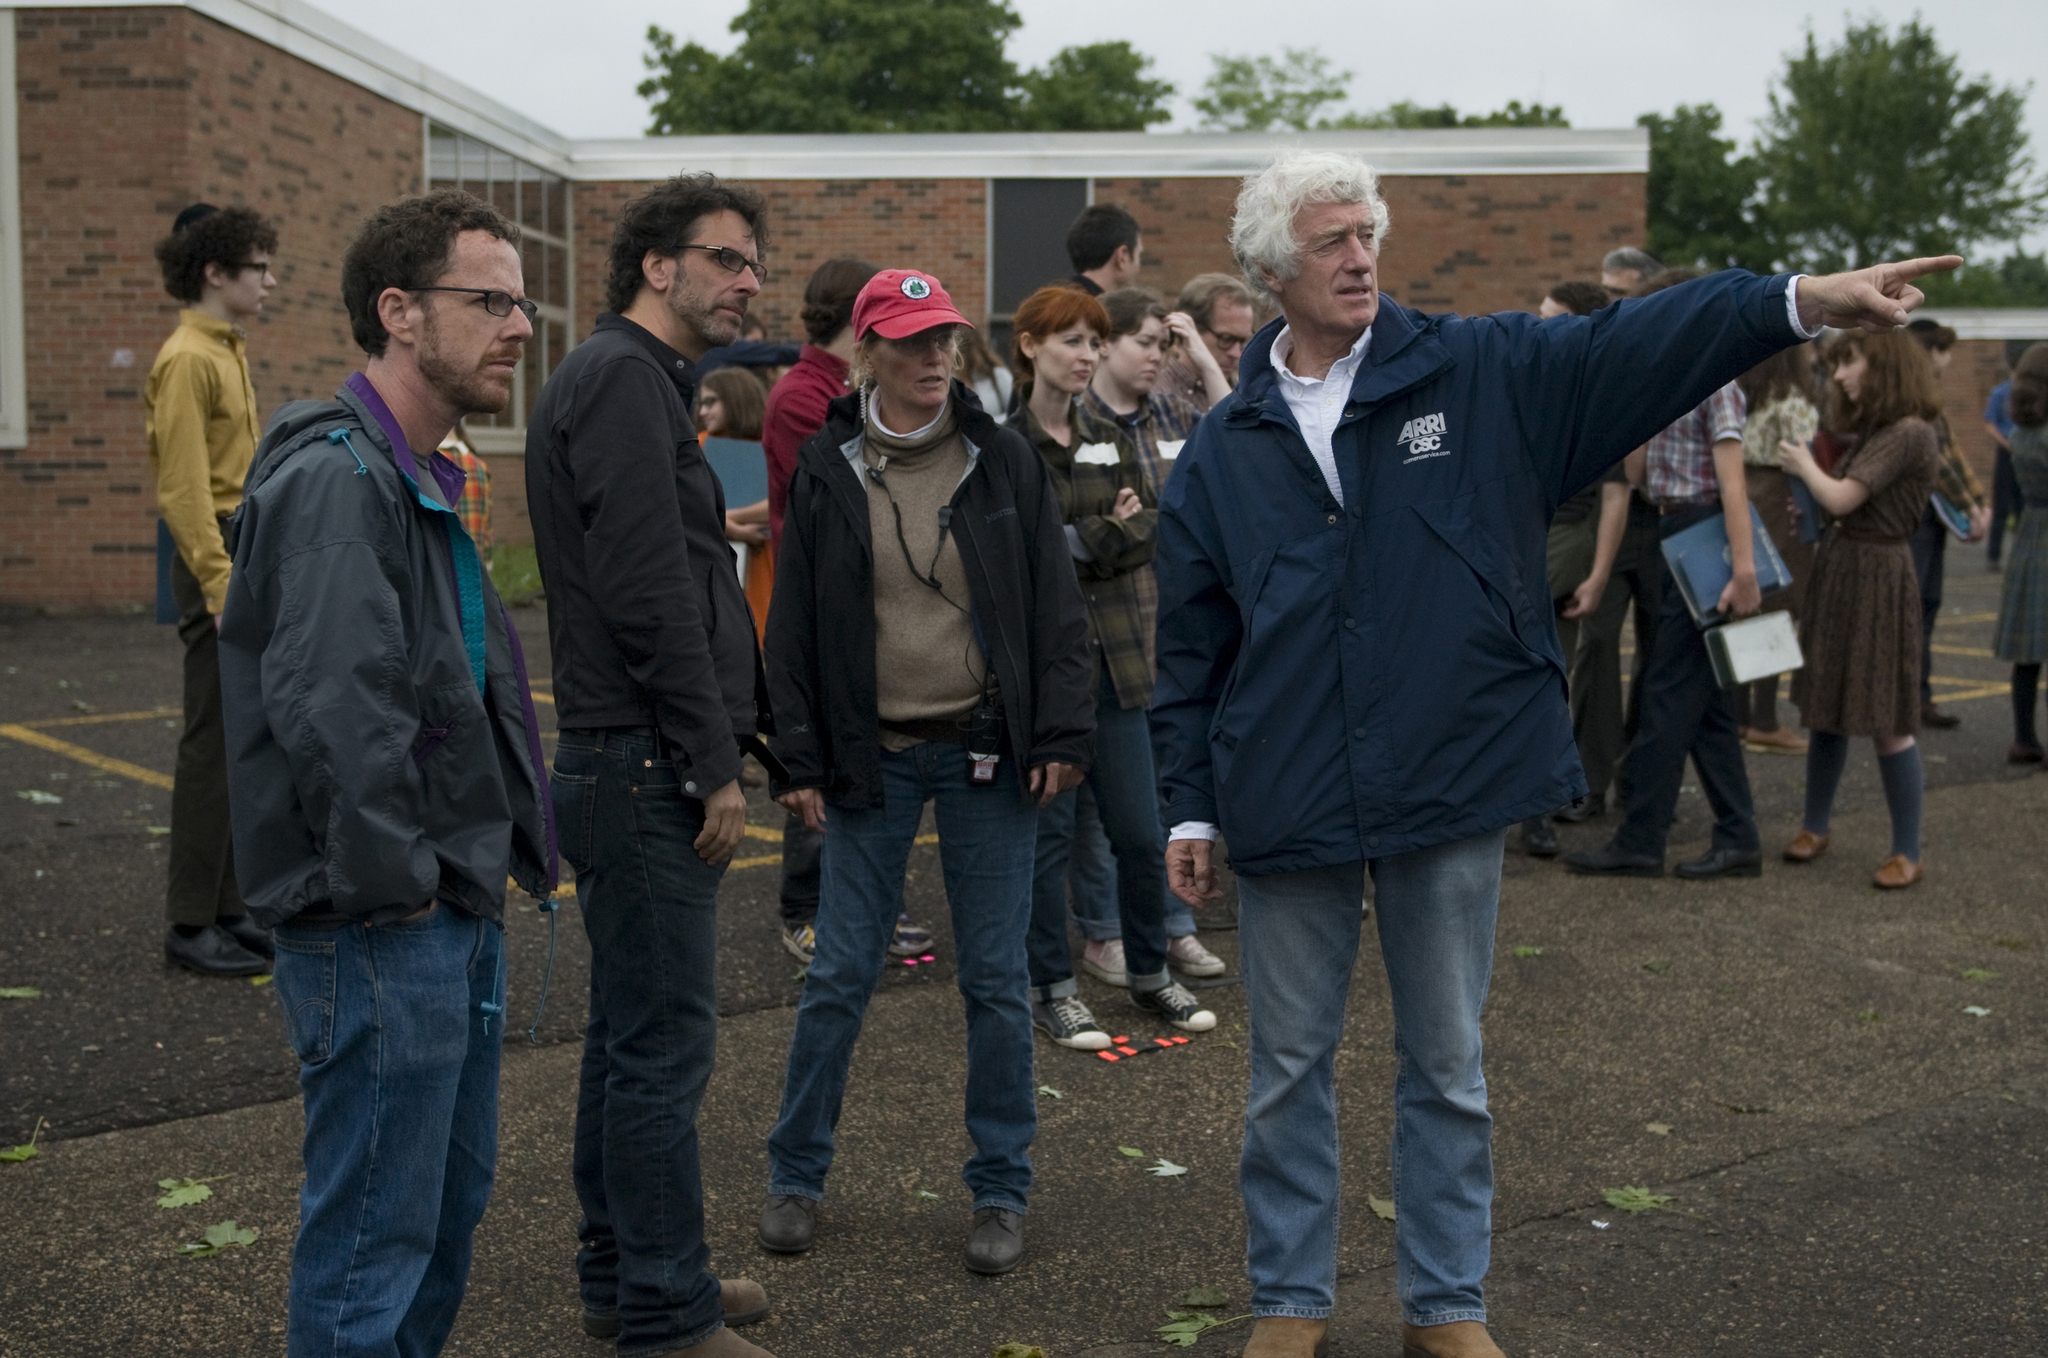 Ethan Coen, Joel Coen, Roger Deakins, and Betsy Magruder in A Serious Man (2009)